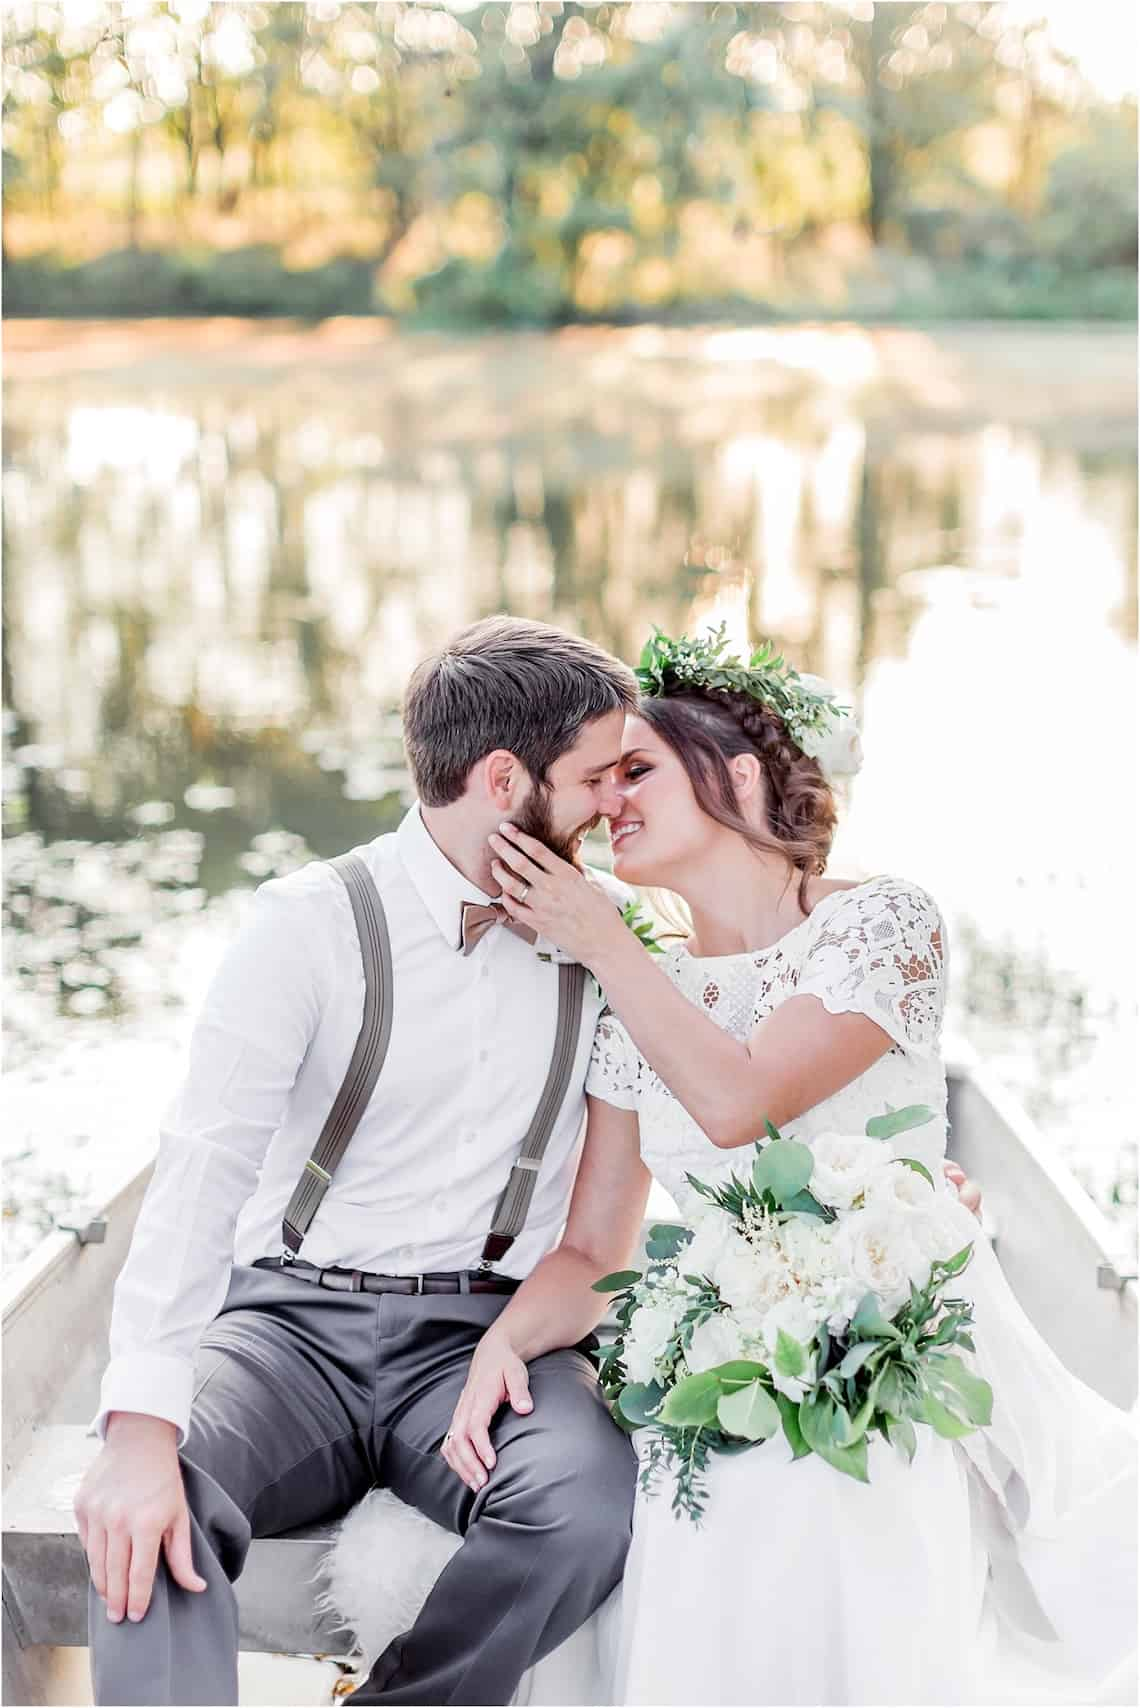 Bride and Groom Kissing in a Boat on a Small Lake